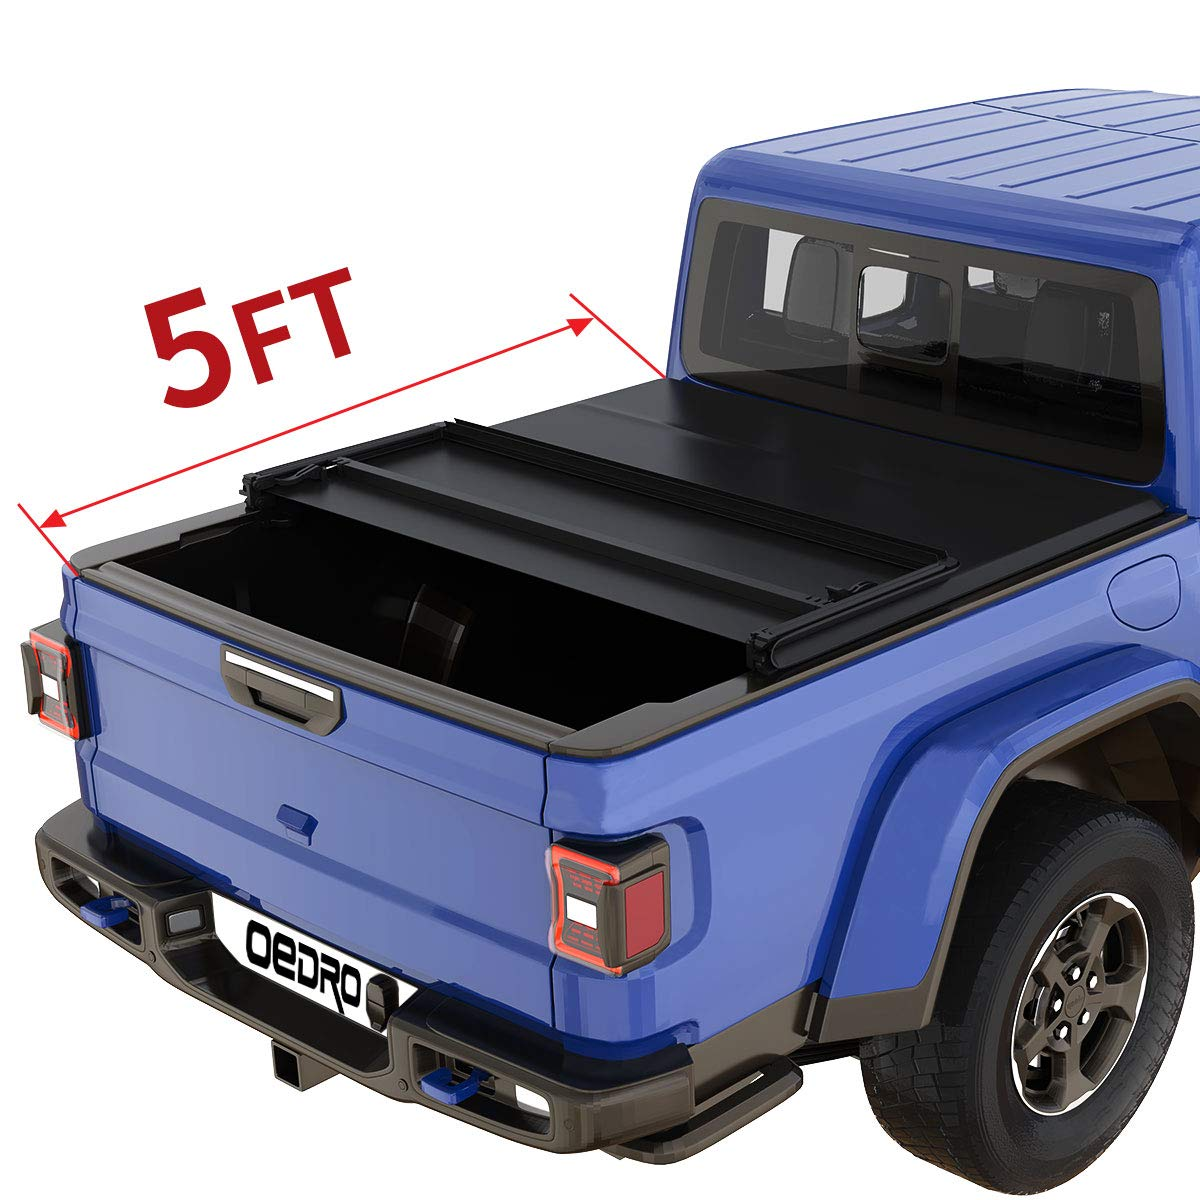 oEdRo Soft Tri-fold Truck Bed Tonneau Cover Compatible with 2020 Jeep Gladiator, Fleetside 5 Feet Bed